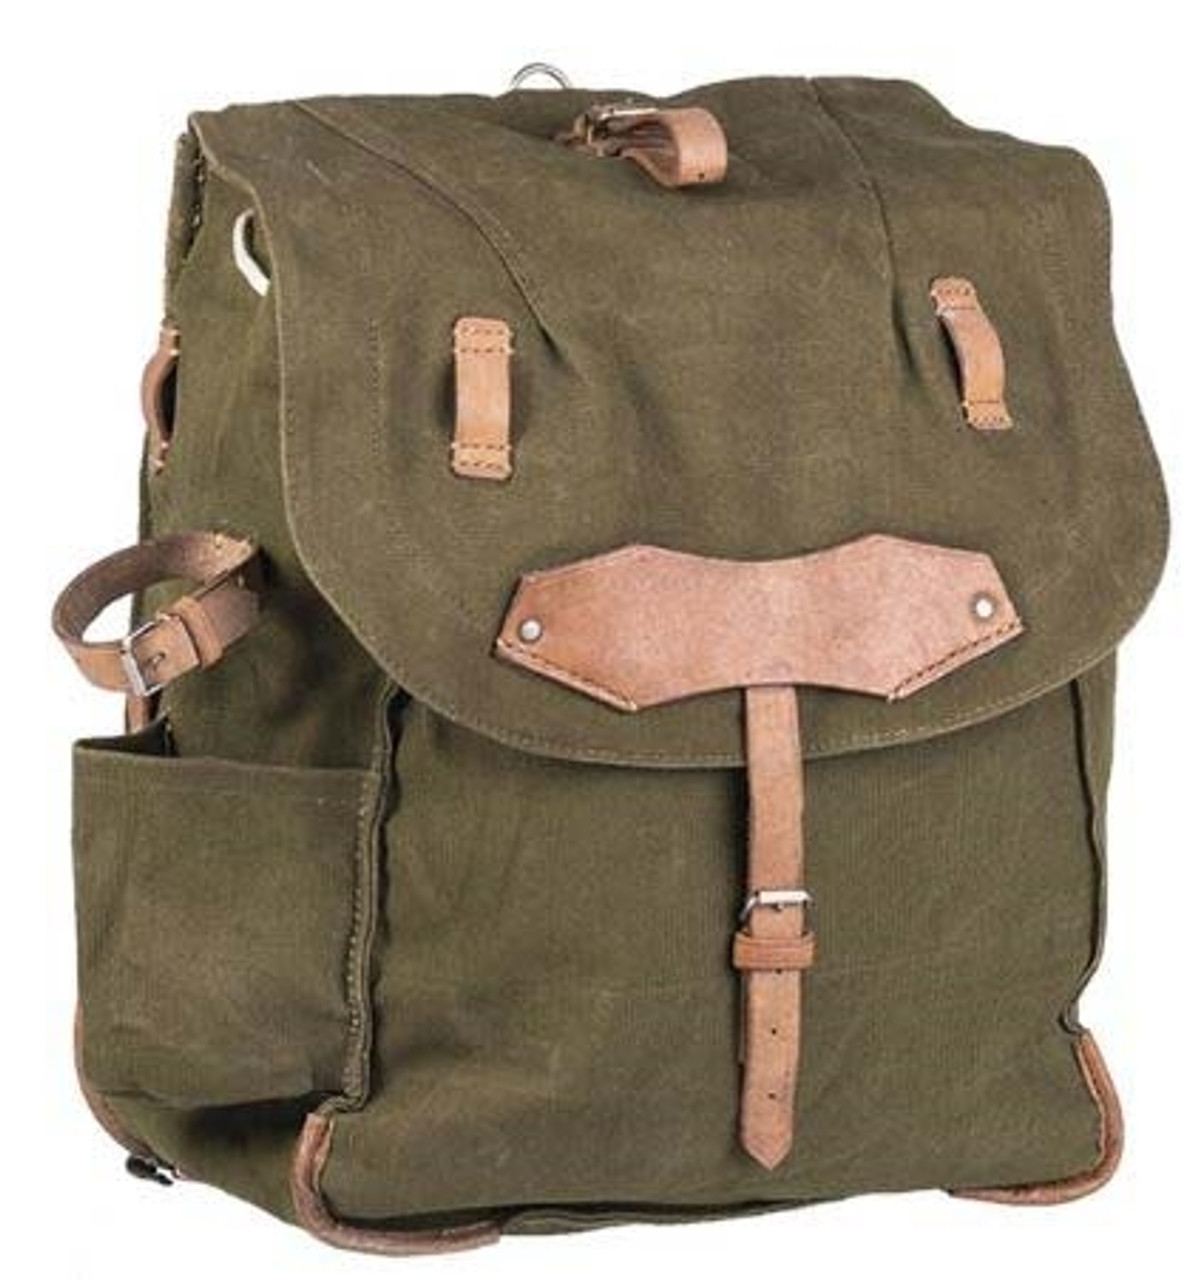 Romanian Army OD Canvas Rucksack from Hessen Antique